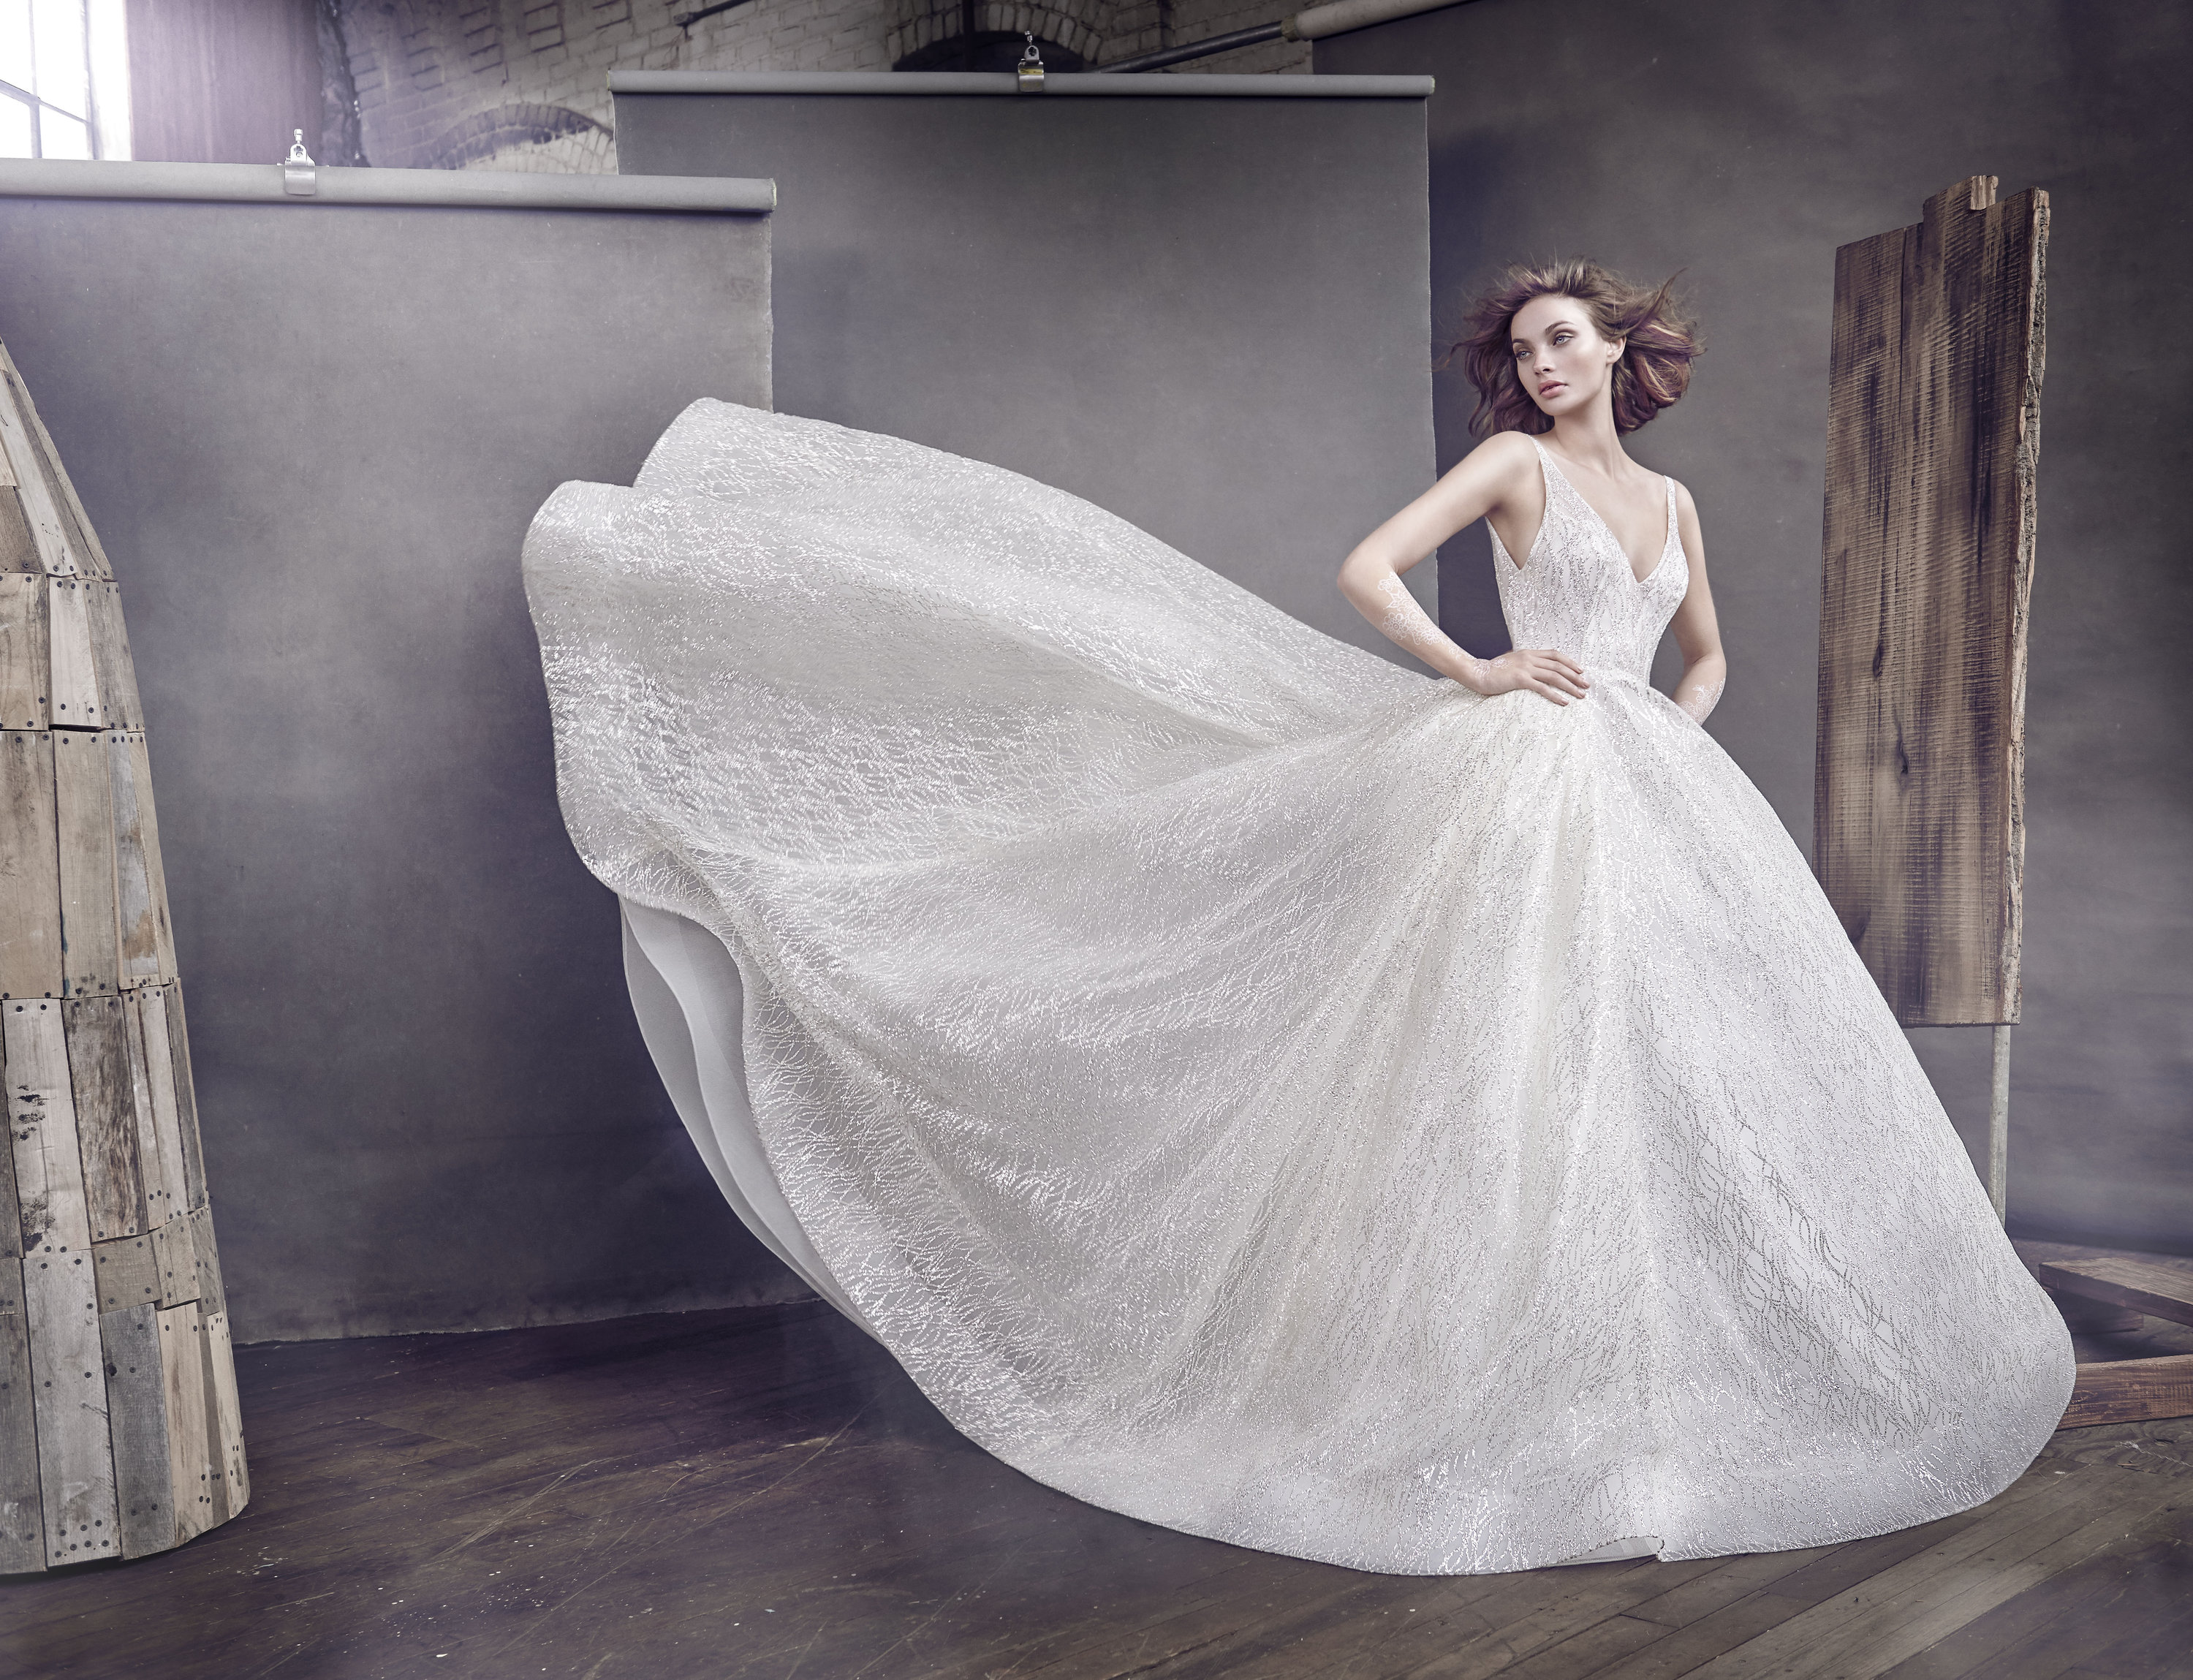 dd7ce0e6e8e Bridal Gowns and Wedding Dresses by JLM Couture - Style 3662